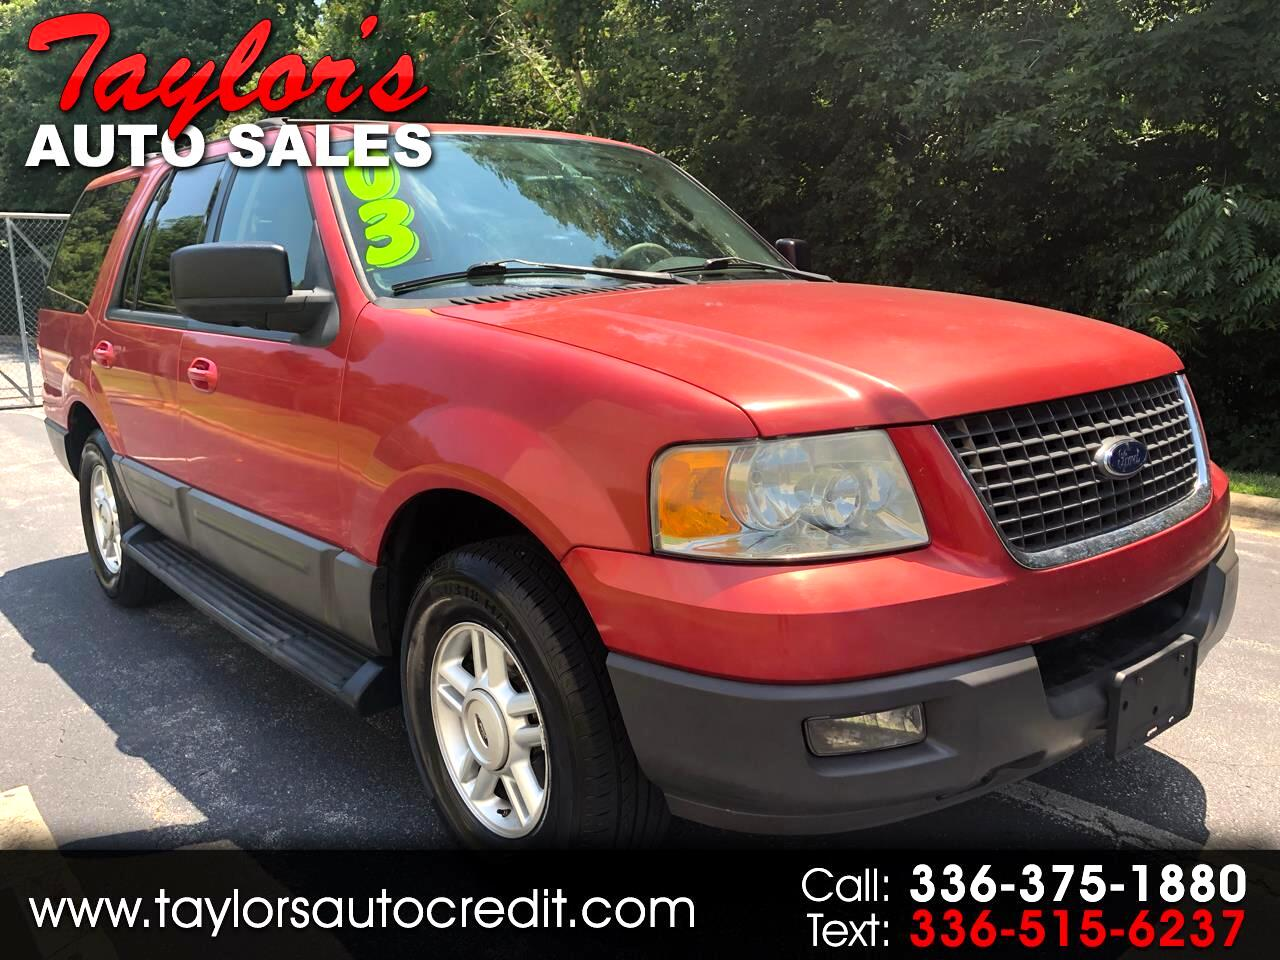 2003 Ford Expedition 5.4L Special Service